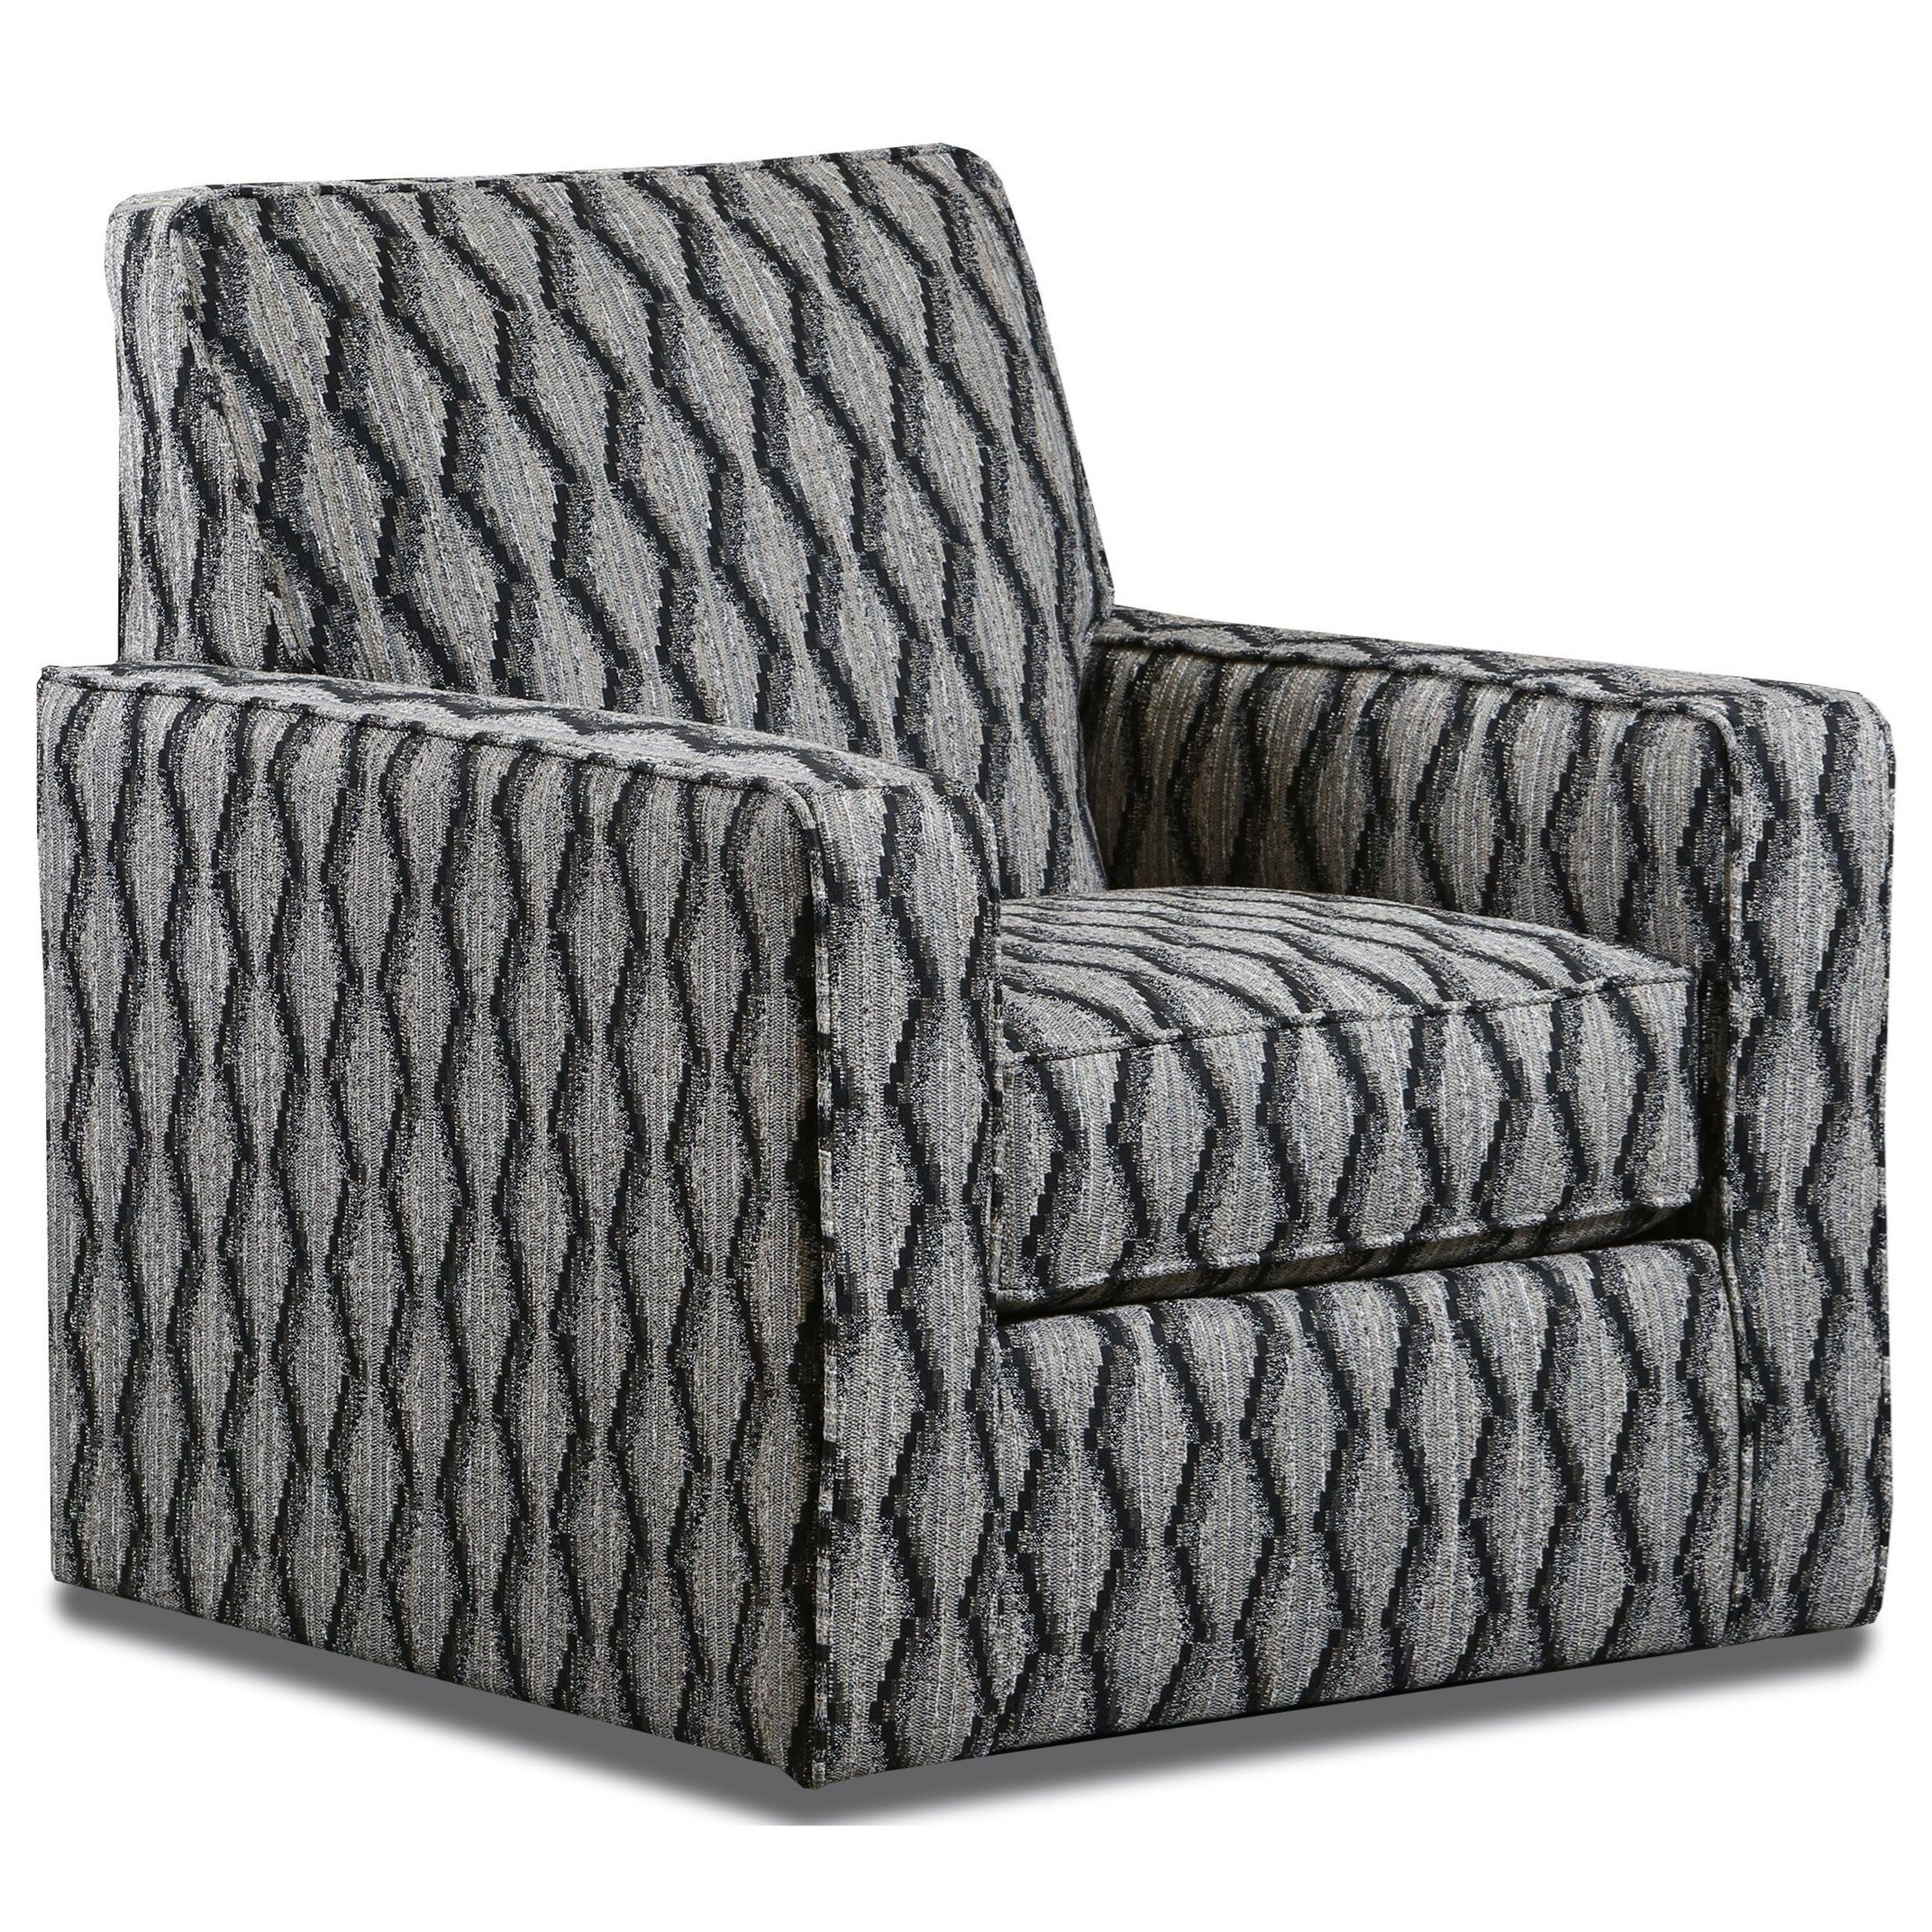 2600 Swivel Chair by Peak Living at Darvin Furniture